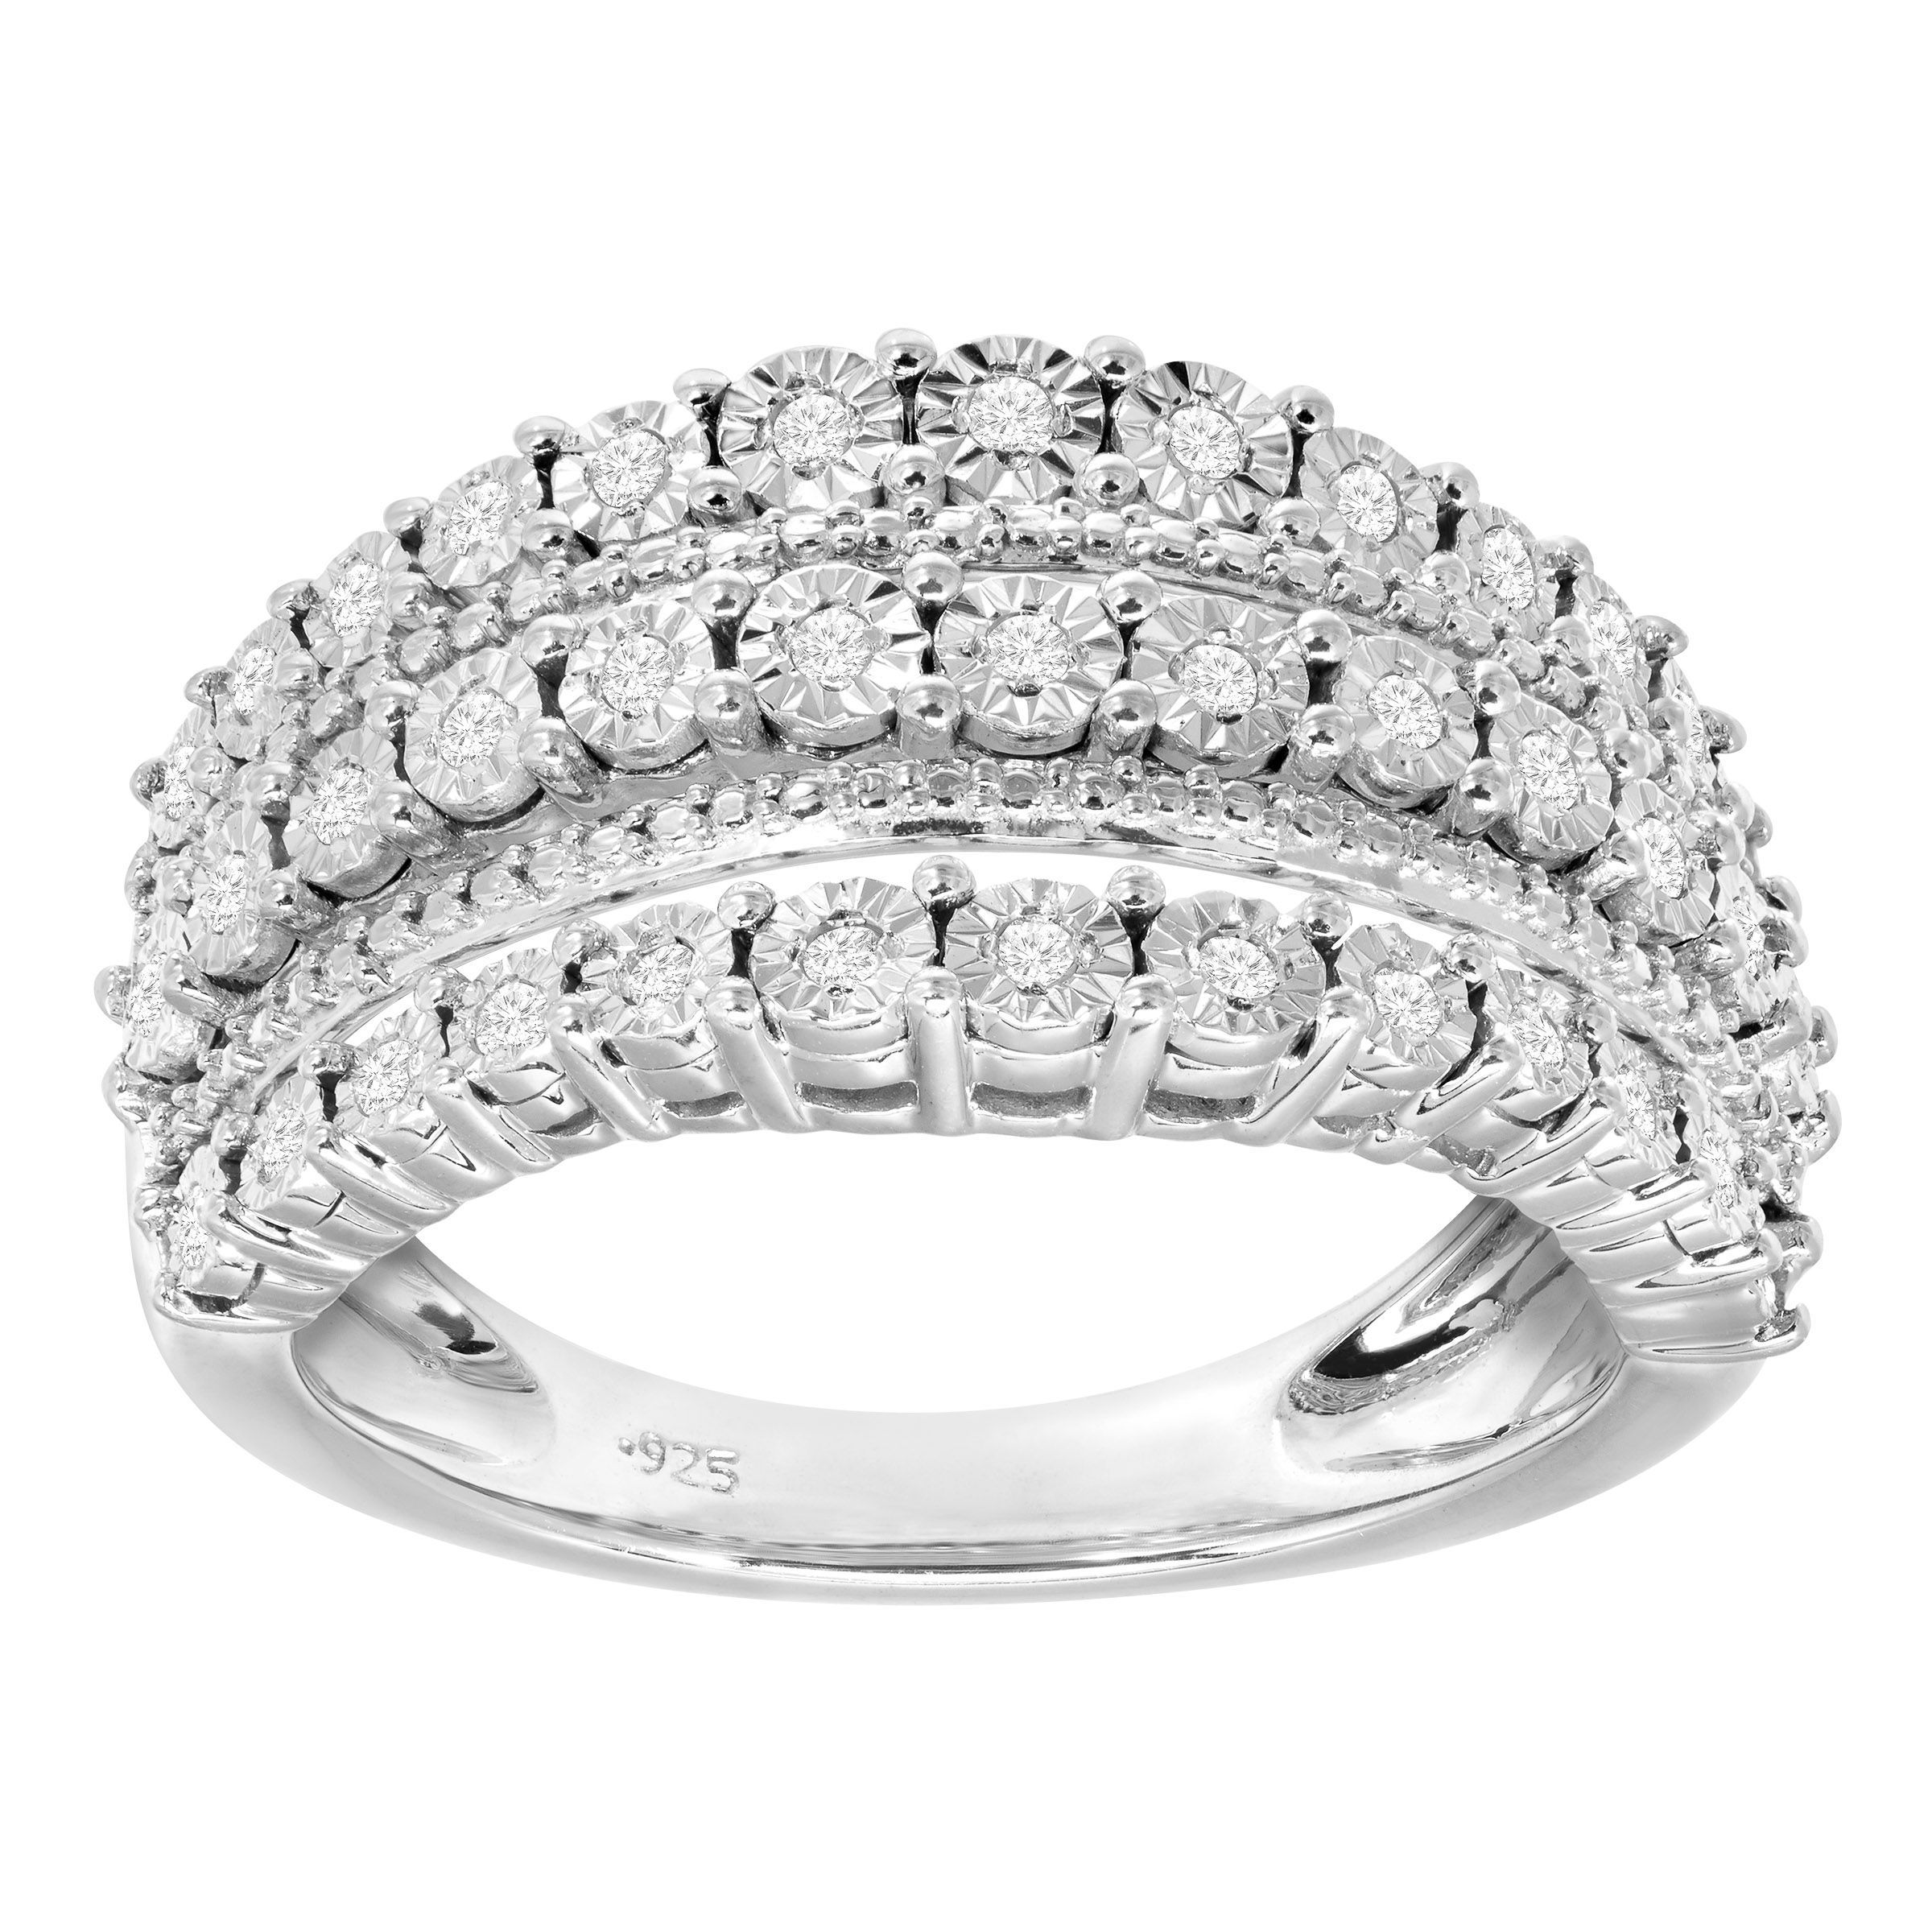 shop co bnr york occasions main gabriel channel new rings omni layered engagement